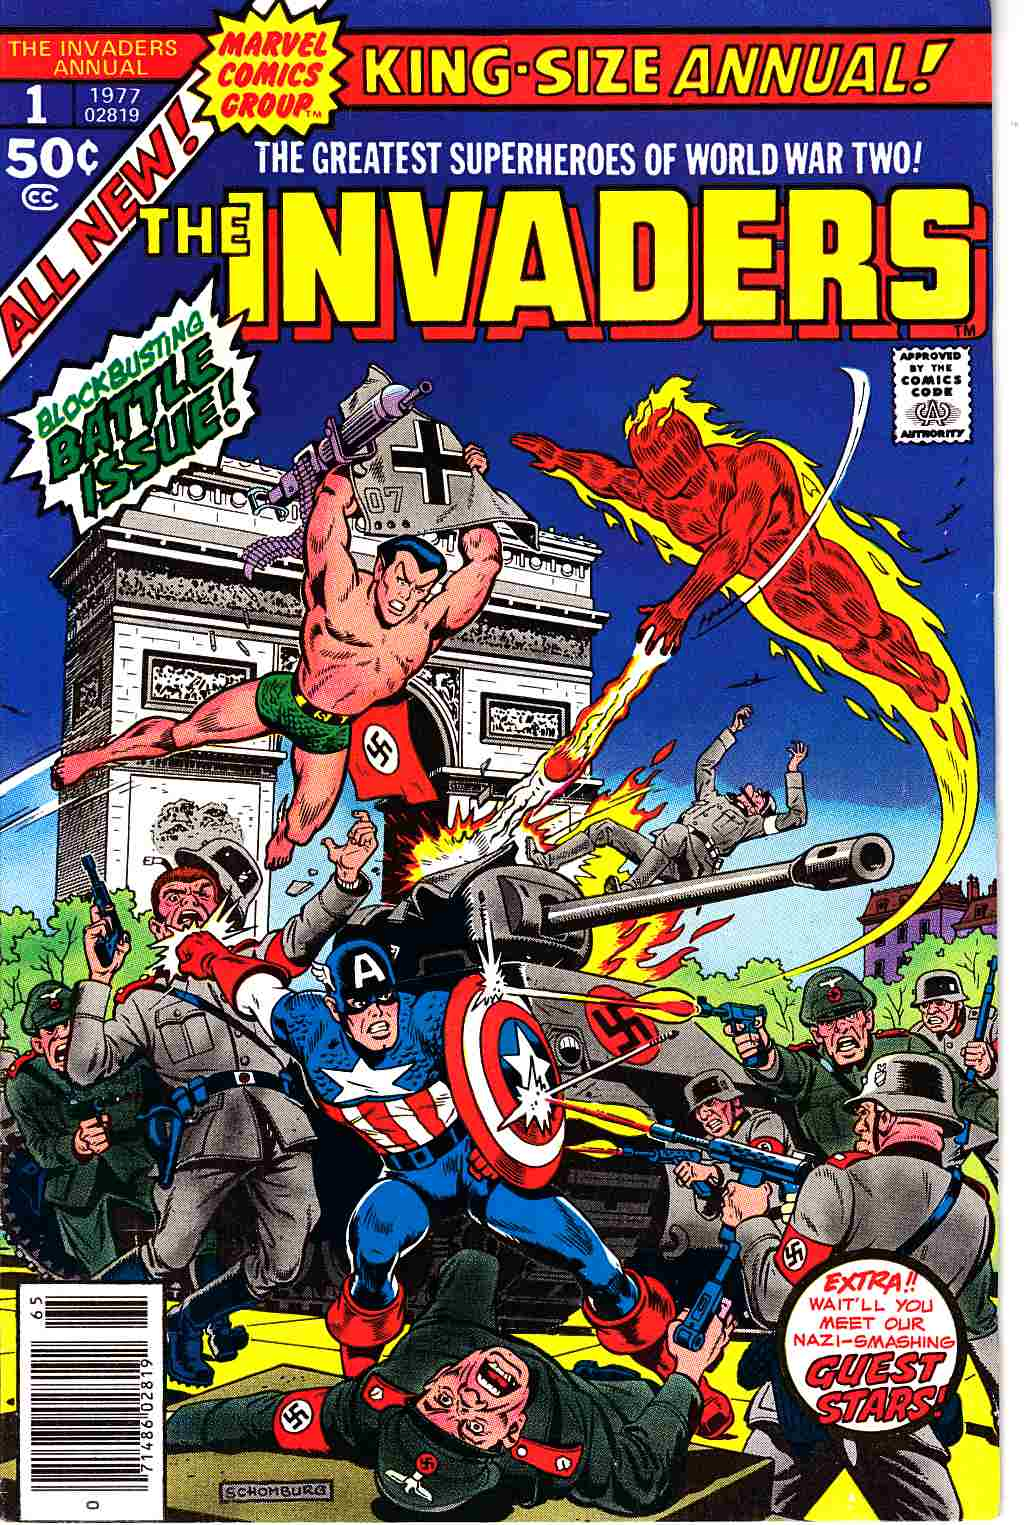 Invaders Annual #1 Fine Plus (6.5) [Marvel Comic]